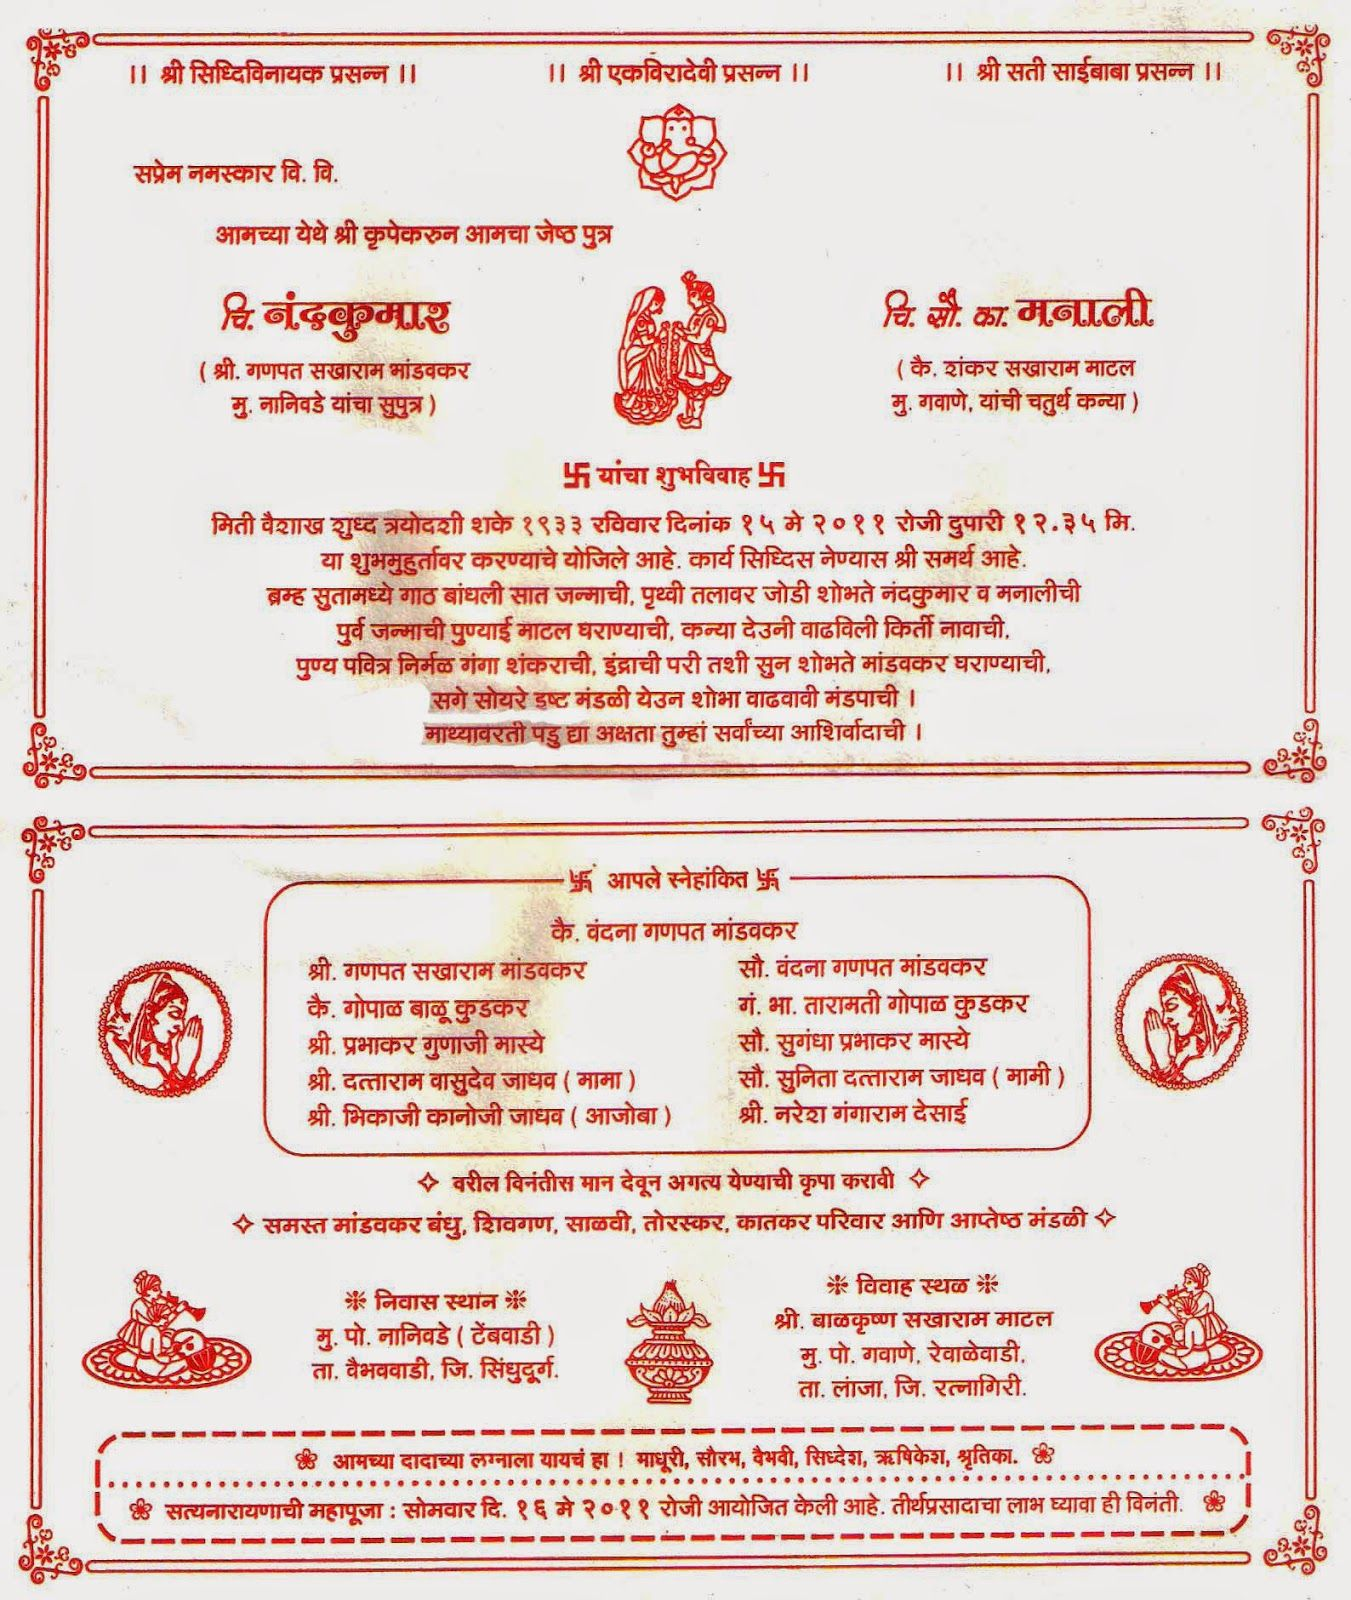 Hindu Wedding Invitation Quotes In Marathi Fresh Cards Image Collections Party